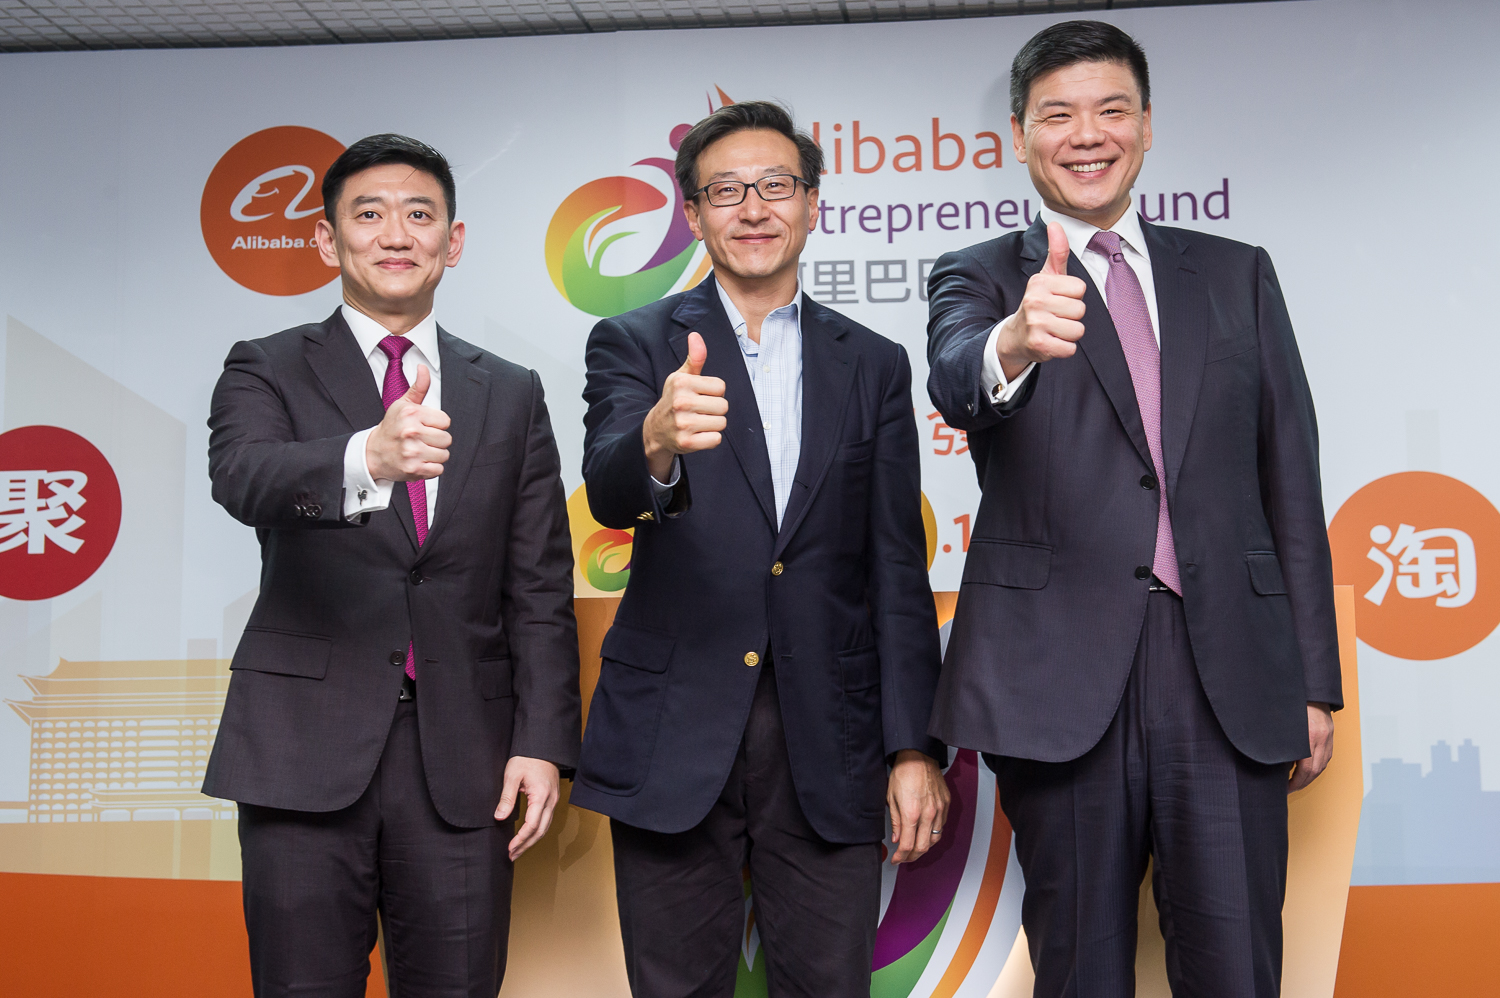 Alibaba Group Holding Limited announces the official launch of its Entrepreneurs Fund for Taiwan